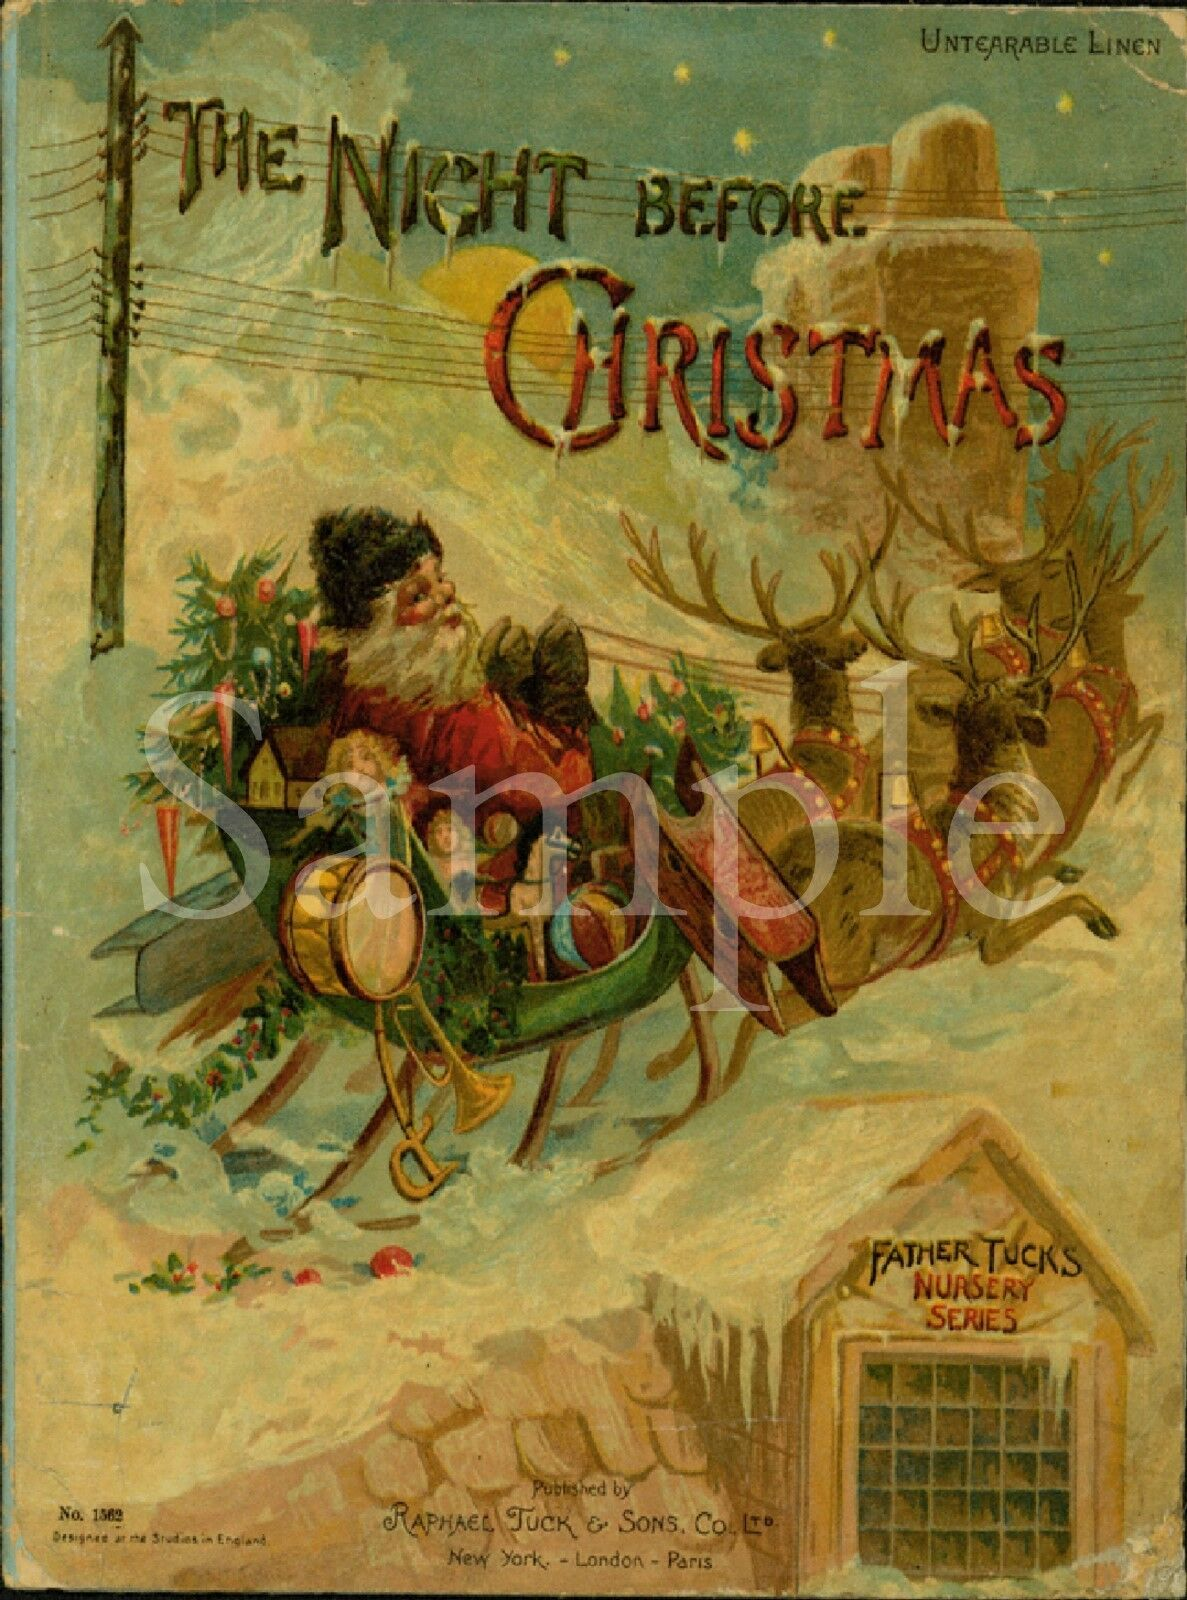 primitive santa claus the night before christmas book front laser print 8x10 1 of 1only 3 available see more - Night Before Christmas Book